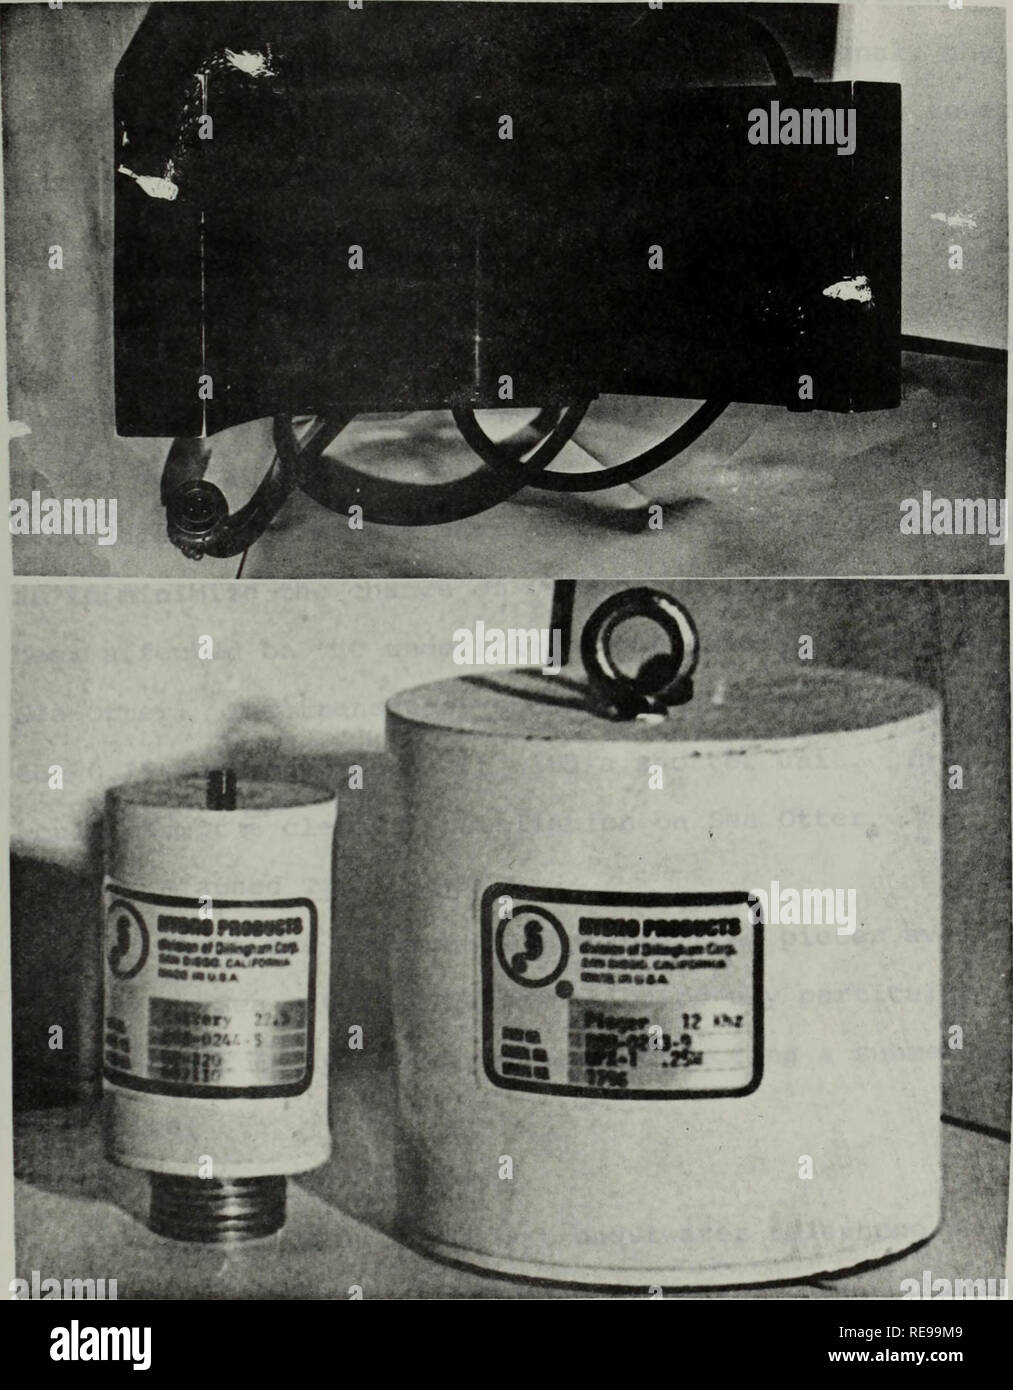 . Conversion of two- man submersible for shallow depth oceanographic research: phase II-potential utilization, instrumentation study.. Oceanography. Figure 2. Pinger/Locator Beacon-Pinger Locator Interocean Systems Model B-910 Signal (KHZ): 12-27-37 Dimensions (in): 7.5 x 5.5 x 11.5 Range (mi): 4+ Power: Internal 12V battery Weight (lbs) : Accuracy: + 5° Air 4 Cost: $925.00 Water Neutral 42. Please note that these images are extracted from scanned page images that may have been digitally enhanced for readability - coloration and appearance of these illustrations may not perfectly resemble the  - Stock Image